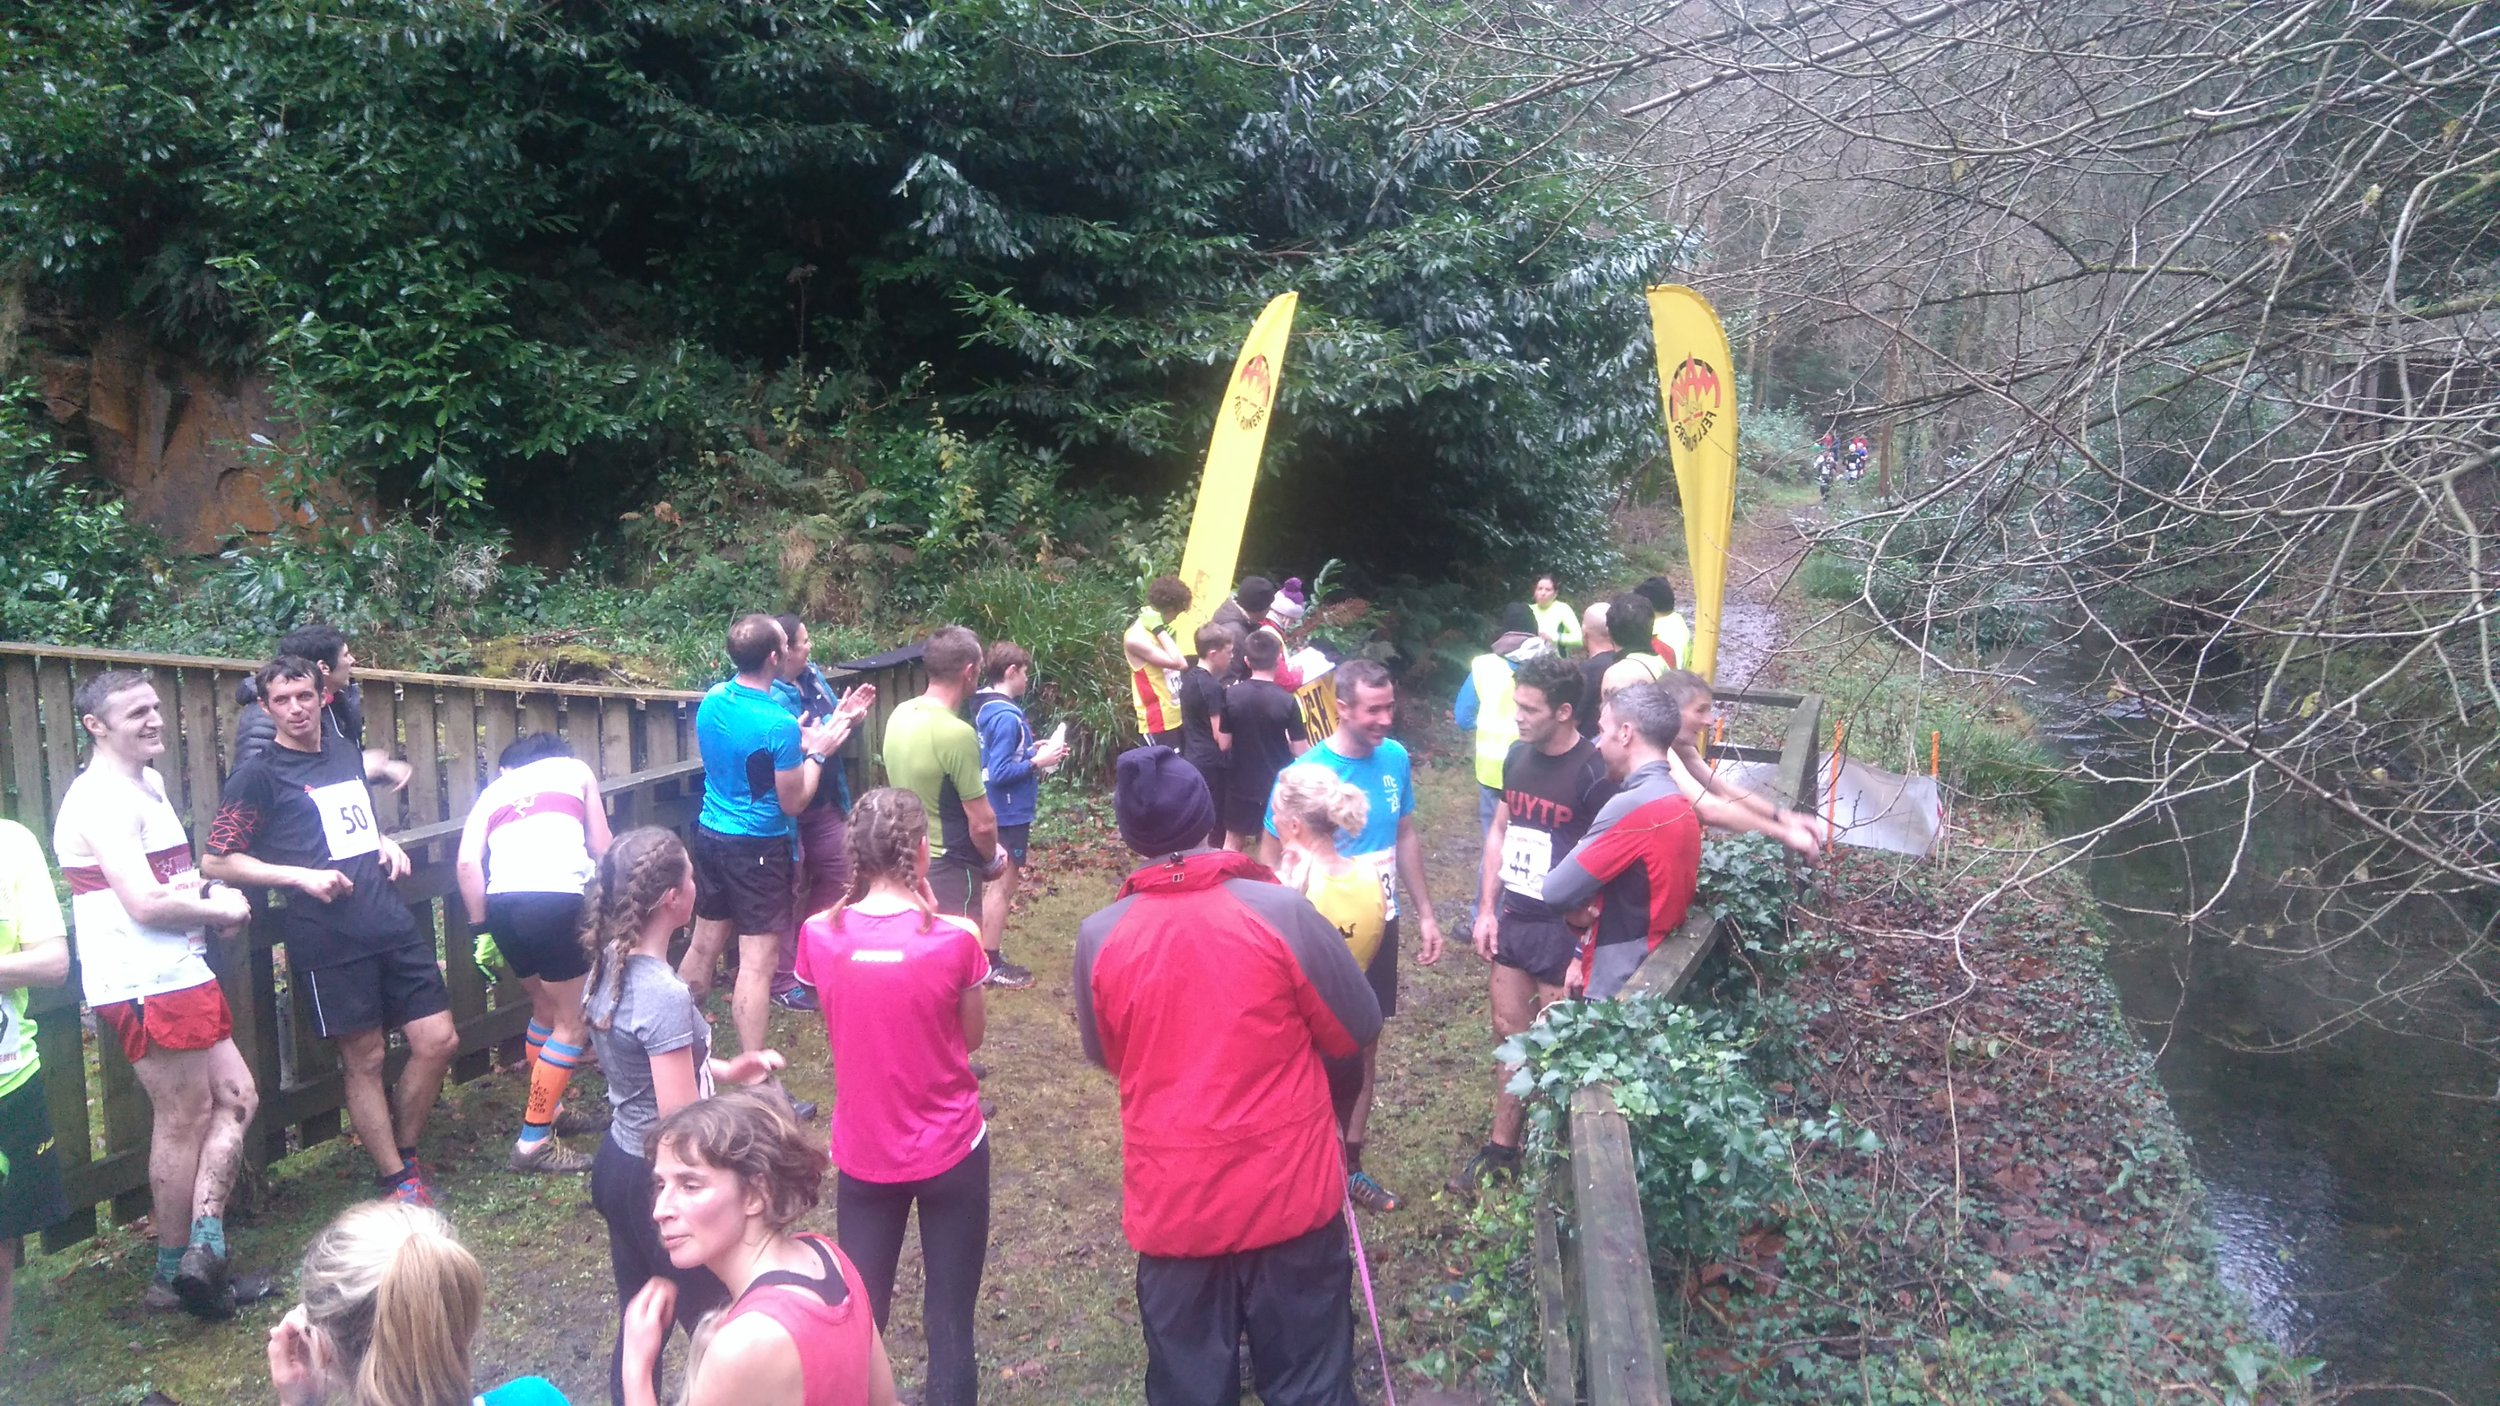 164 runners completed at least one race in the series